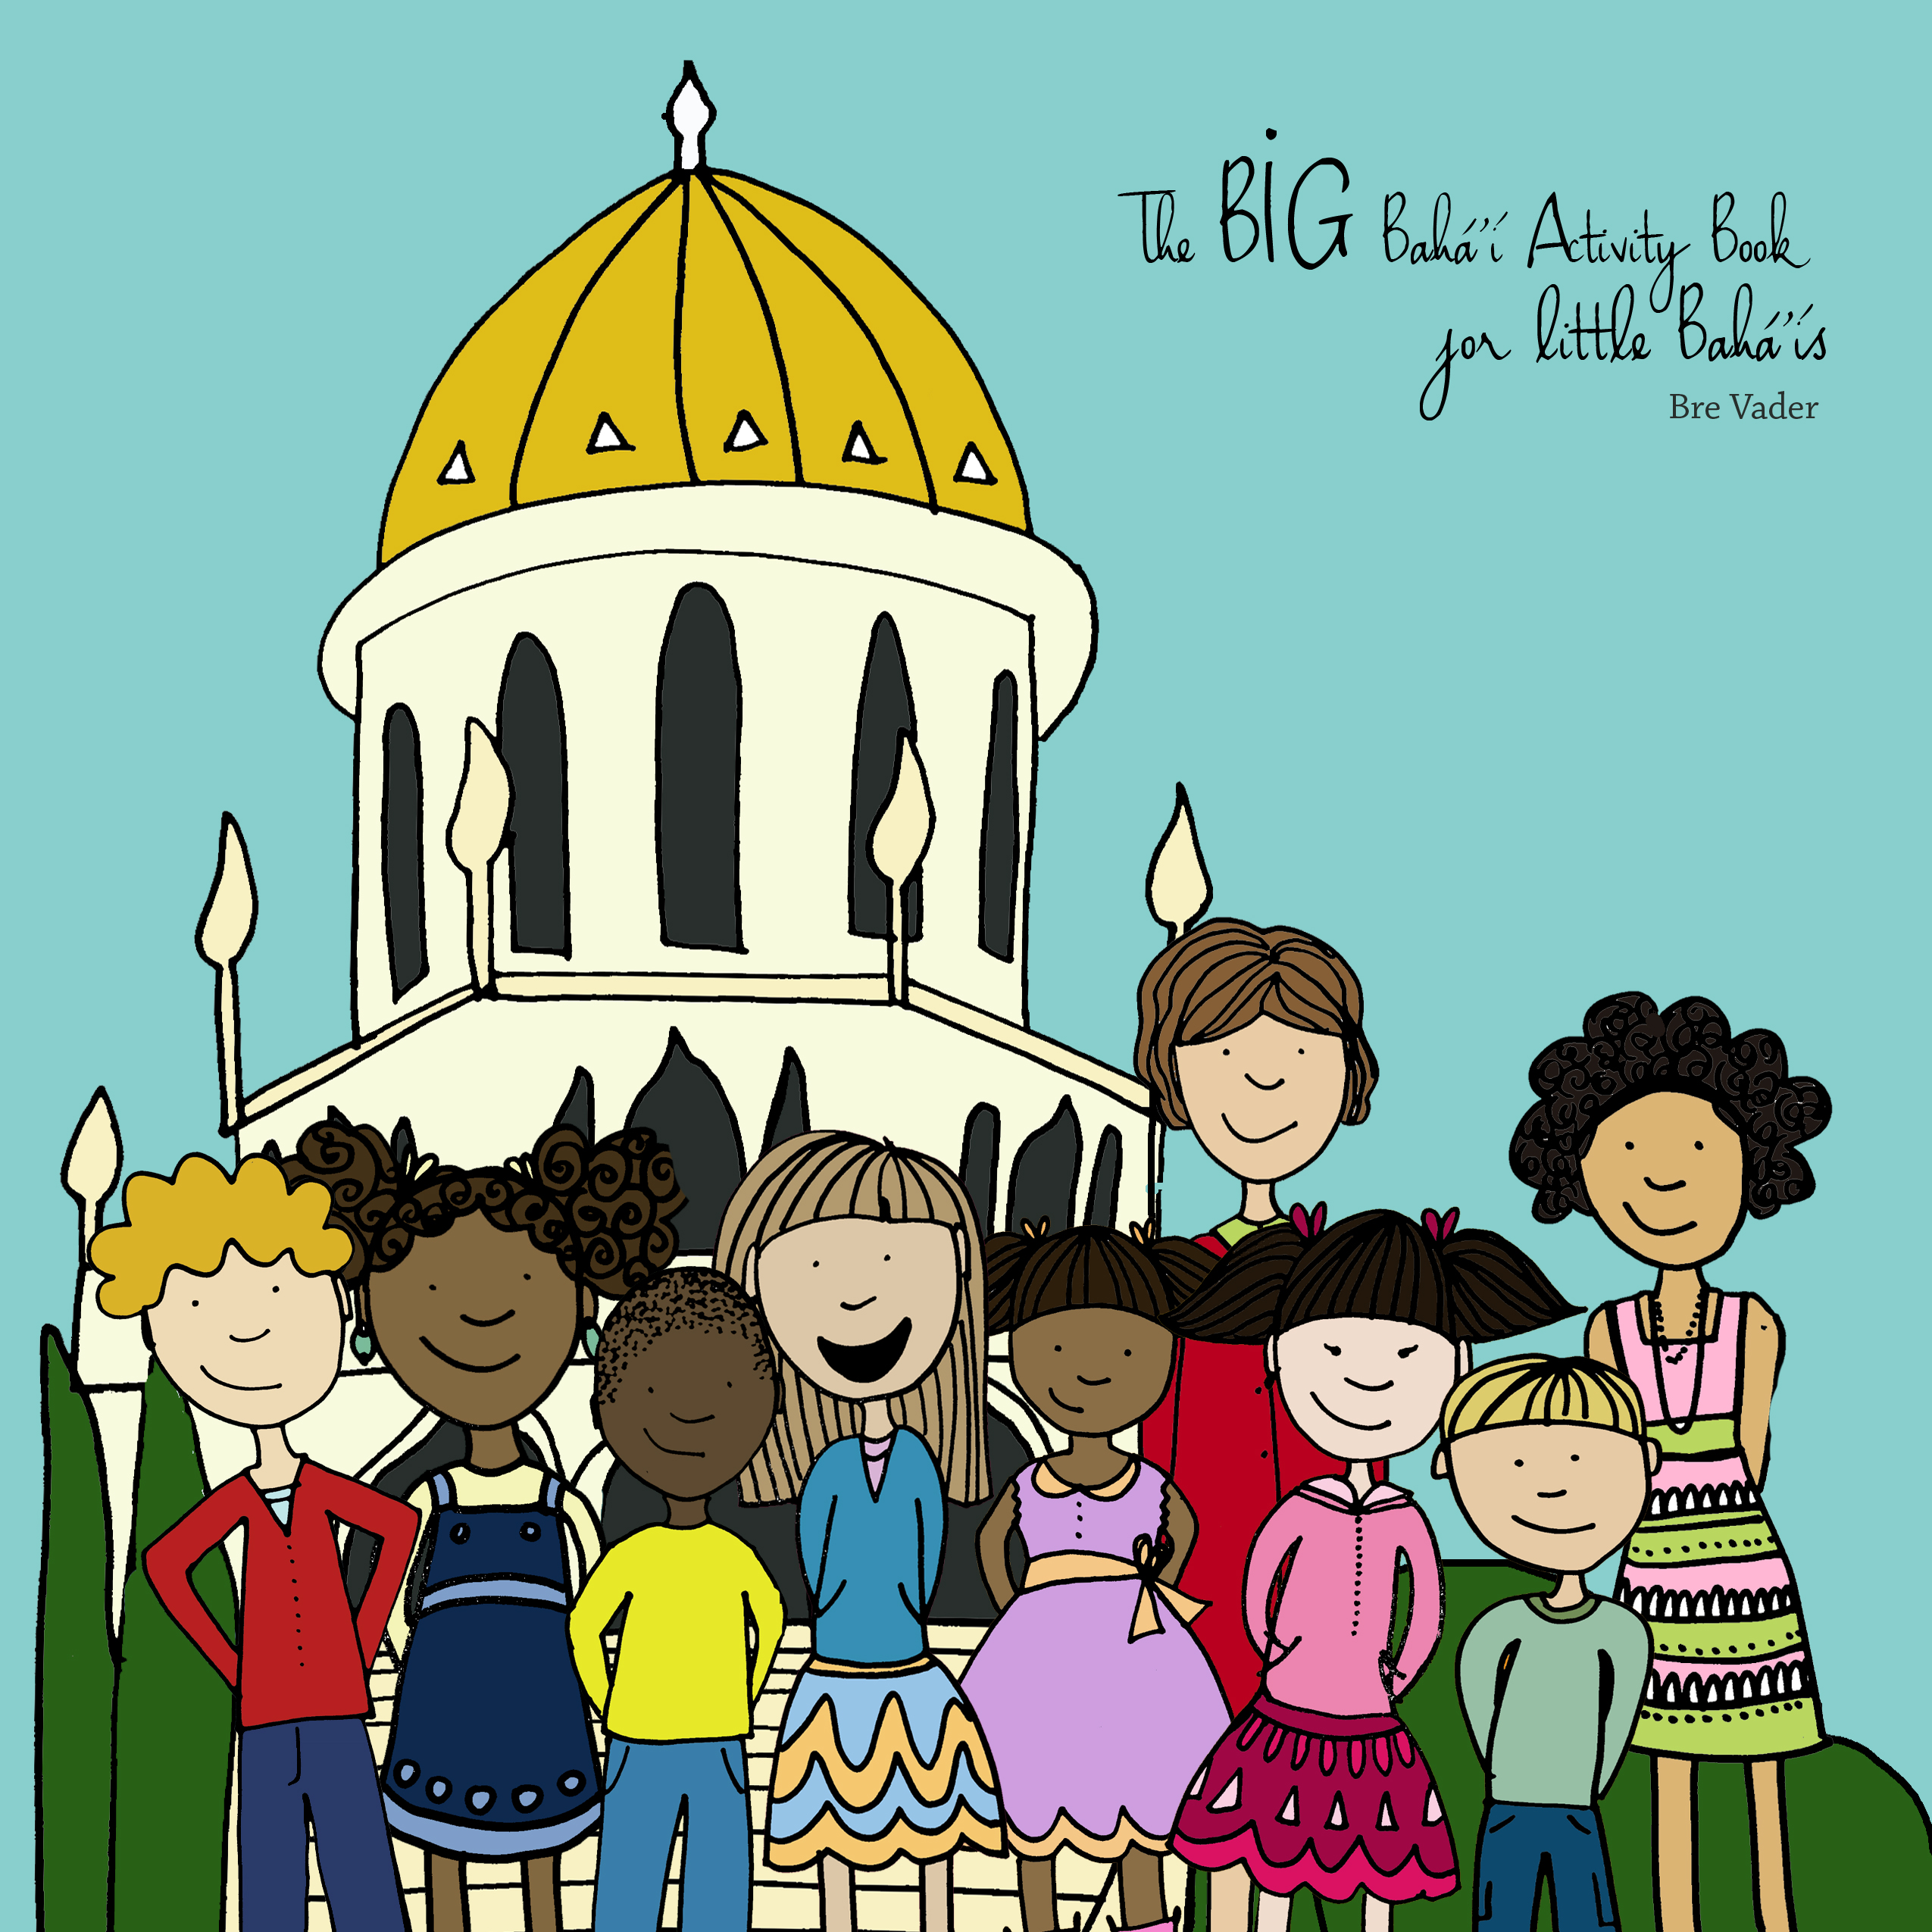 BIG Baha'i Activity Book for Little Baha'is - Baha'i Kids